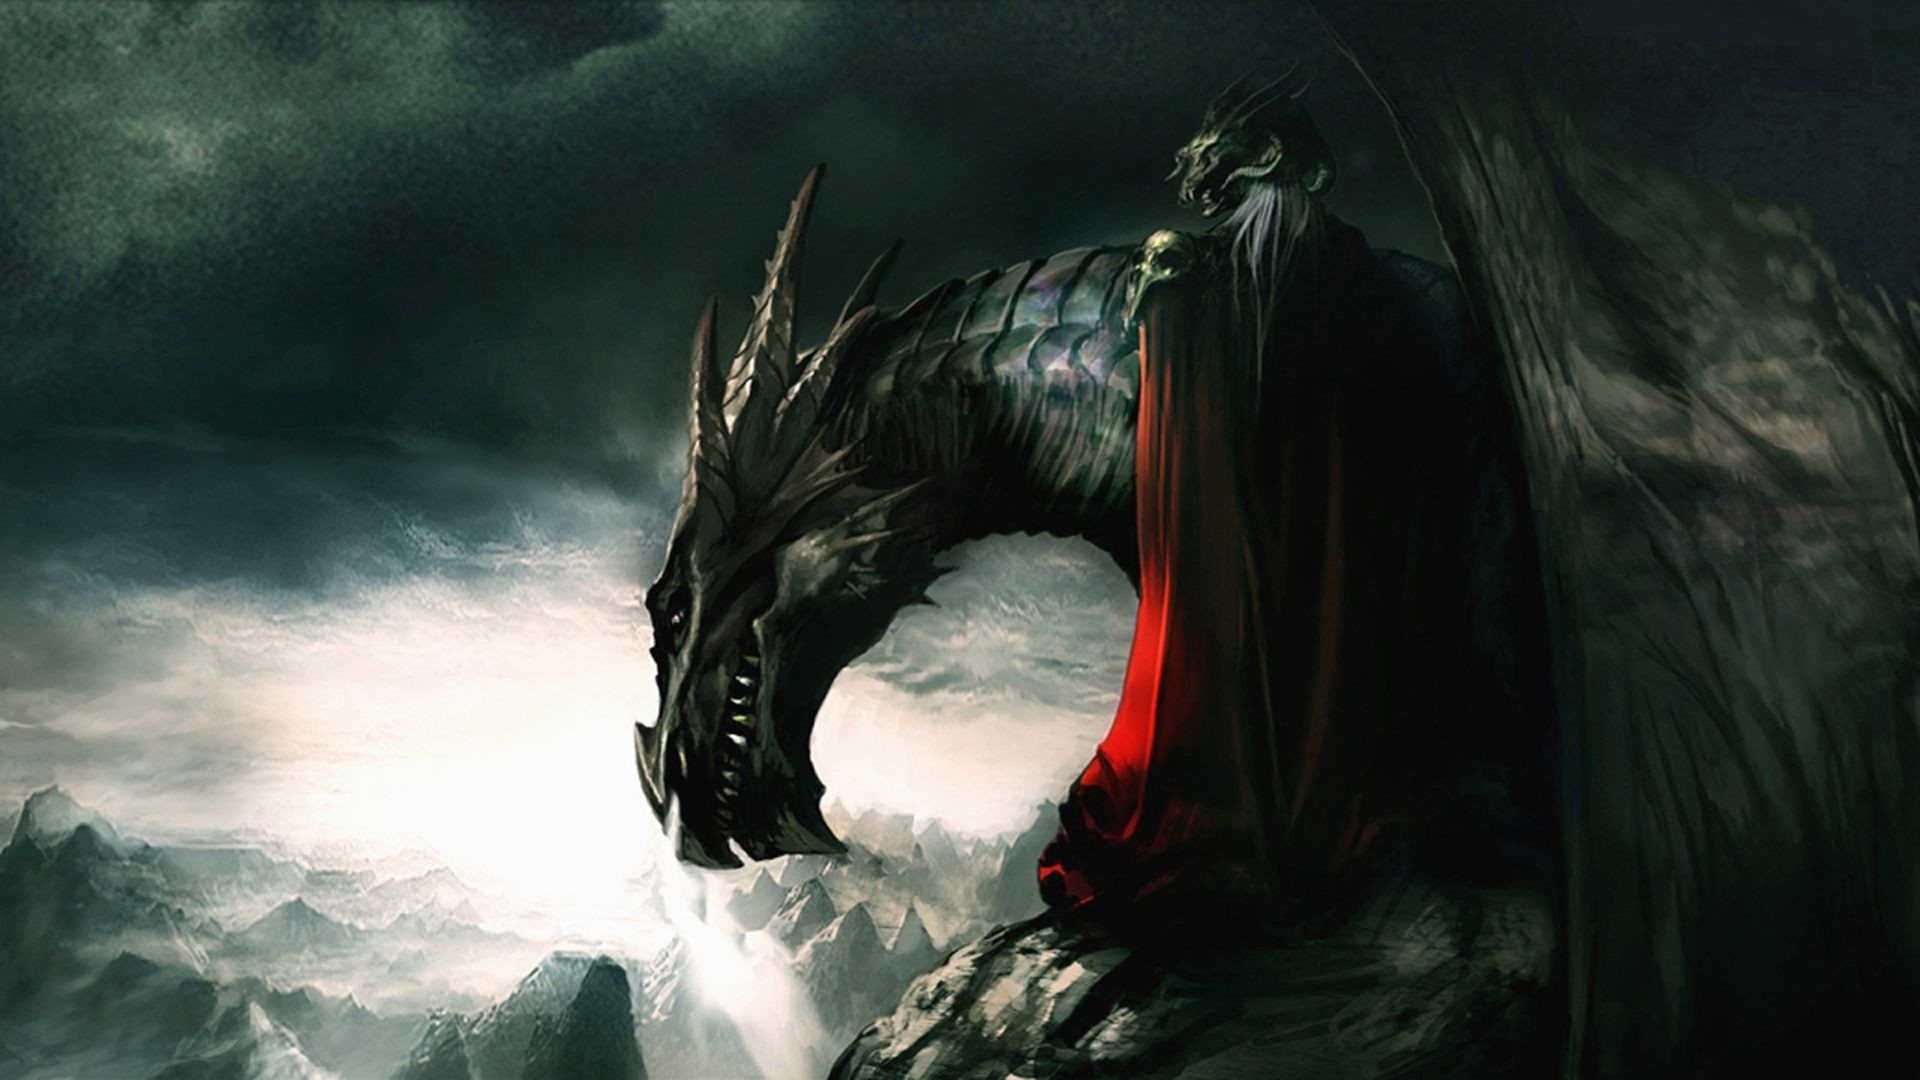 dragons wallpaper download free stunning hd backgrounds for